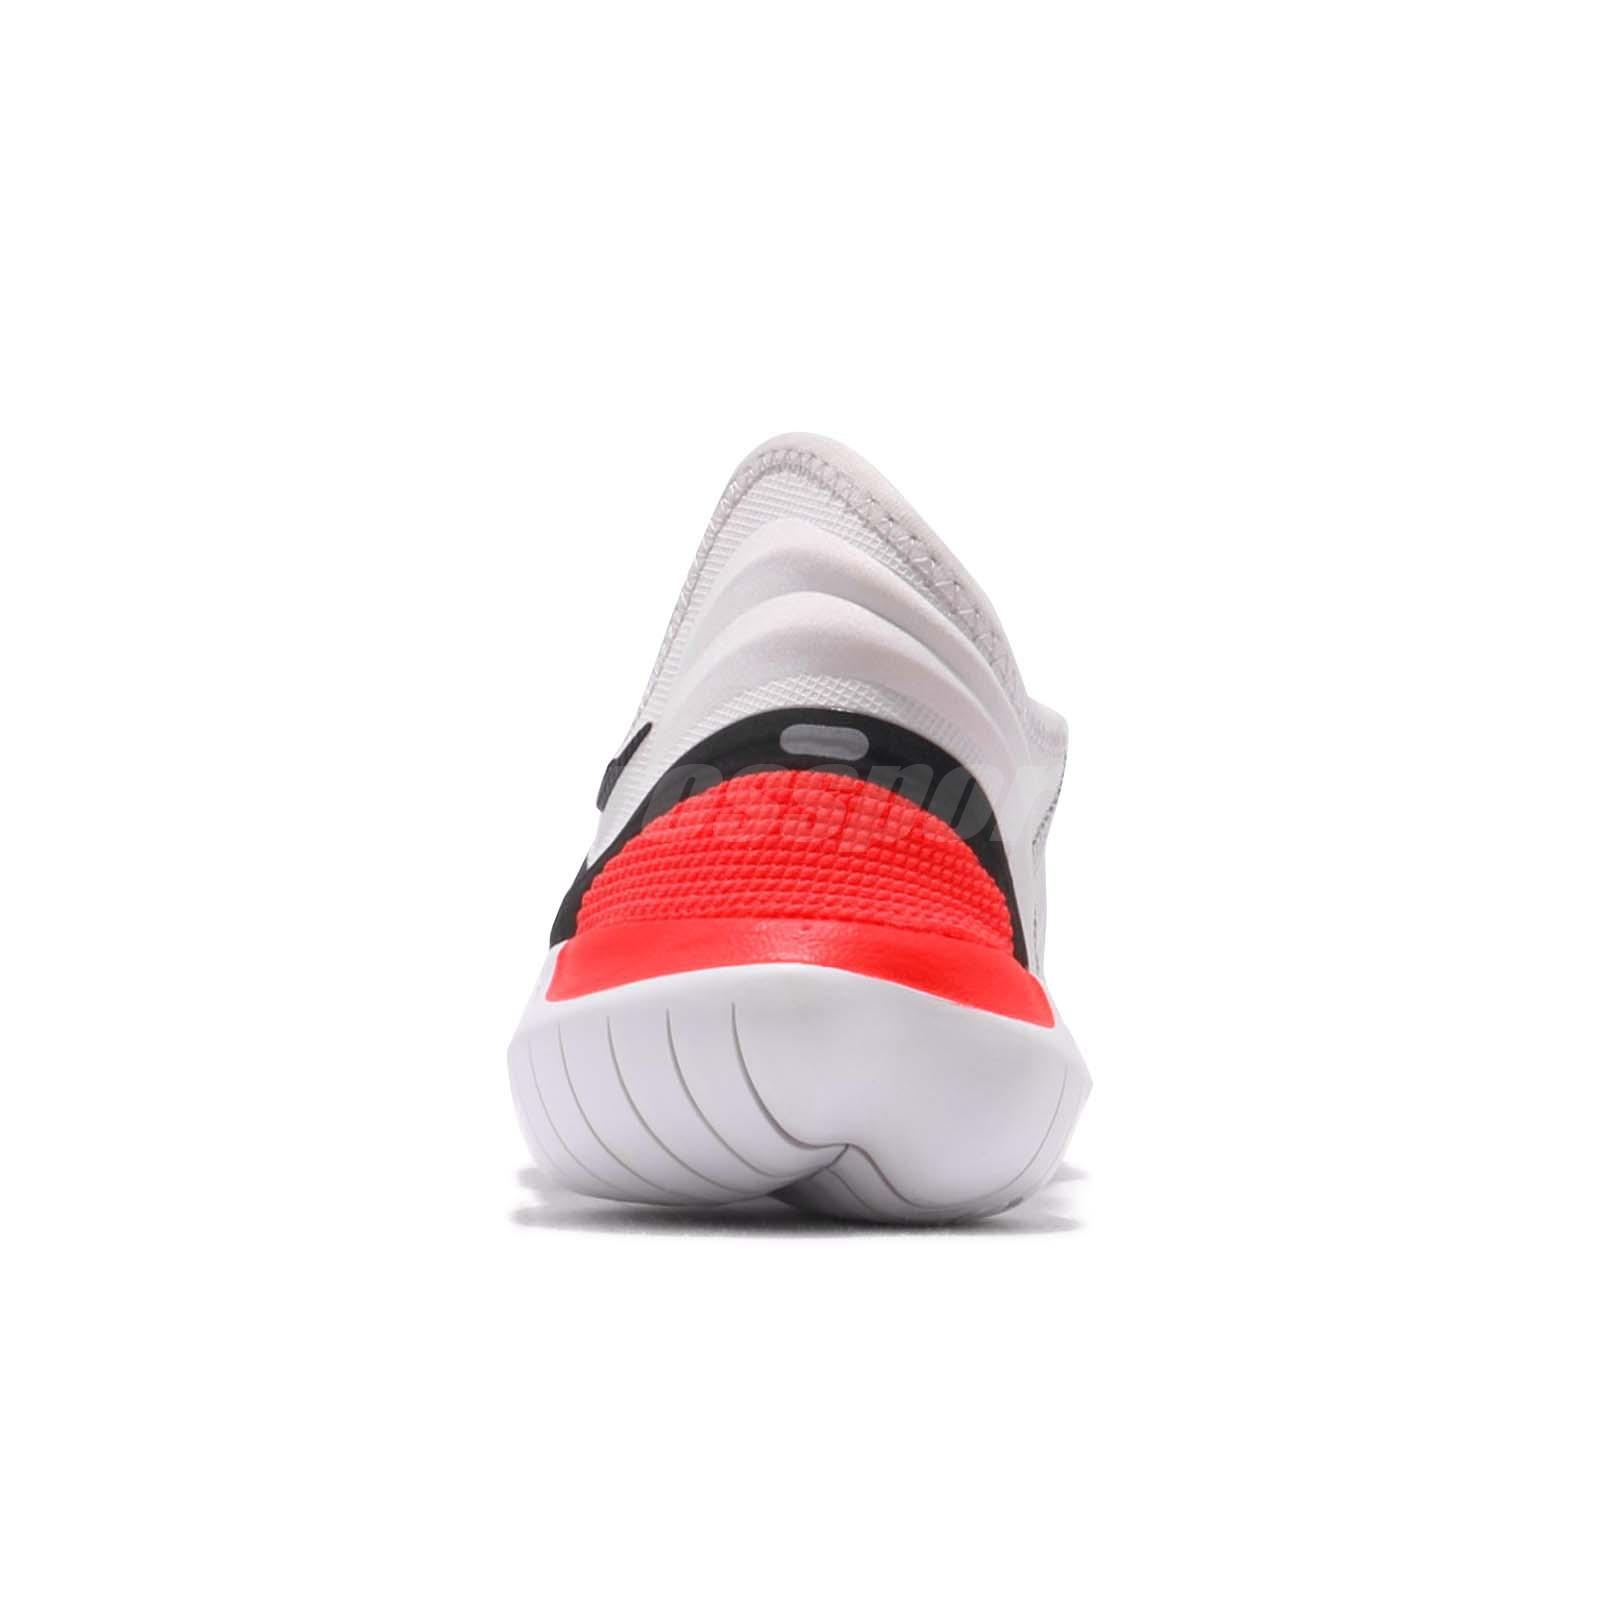 f207a9283539 Nike Free RN Flyknit 3.0 Grey Black White Red Men Running Shoes ...